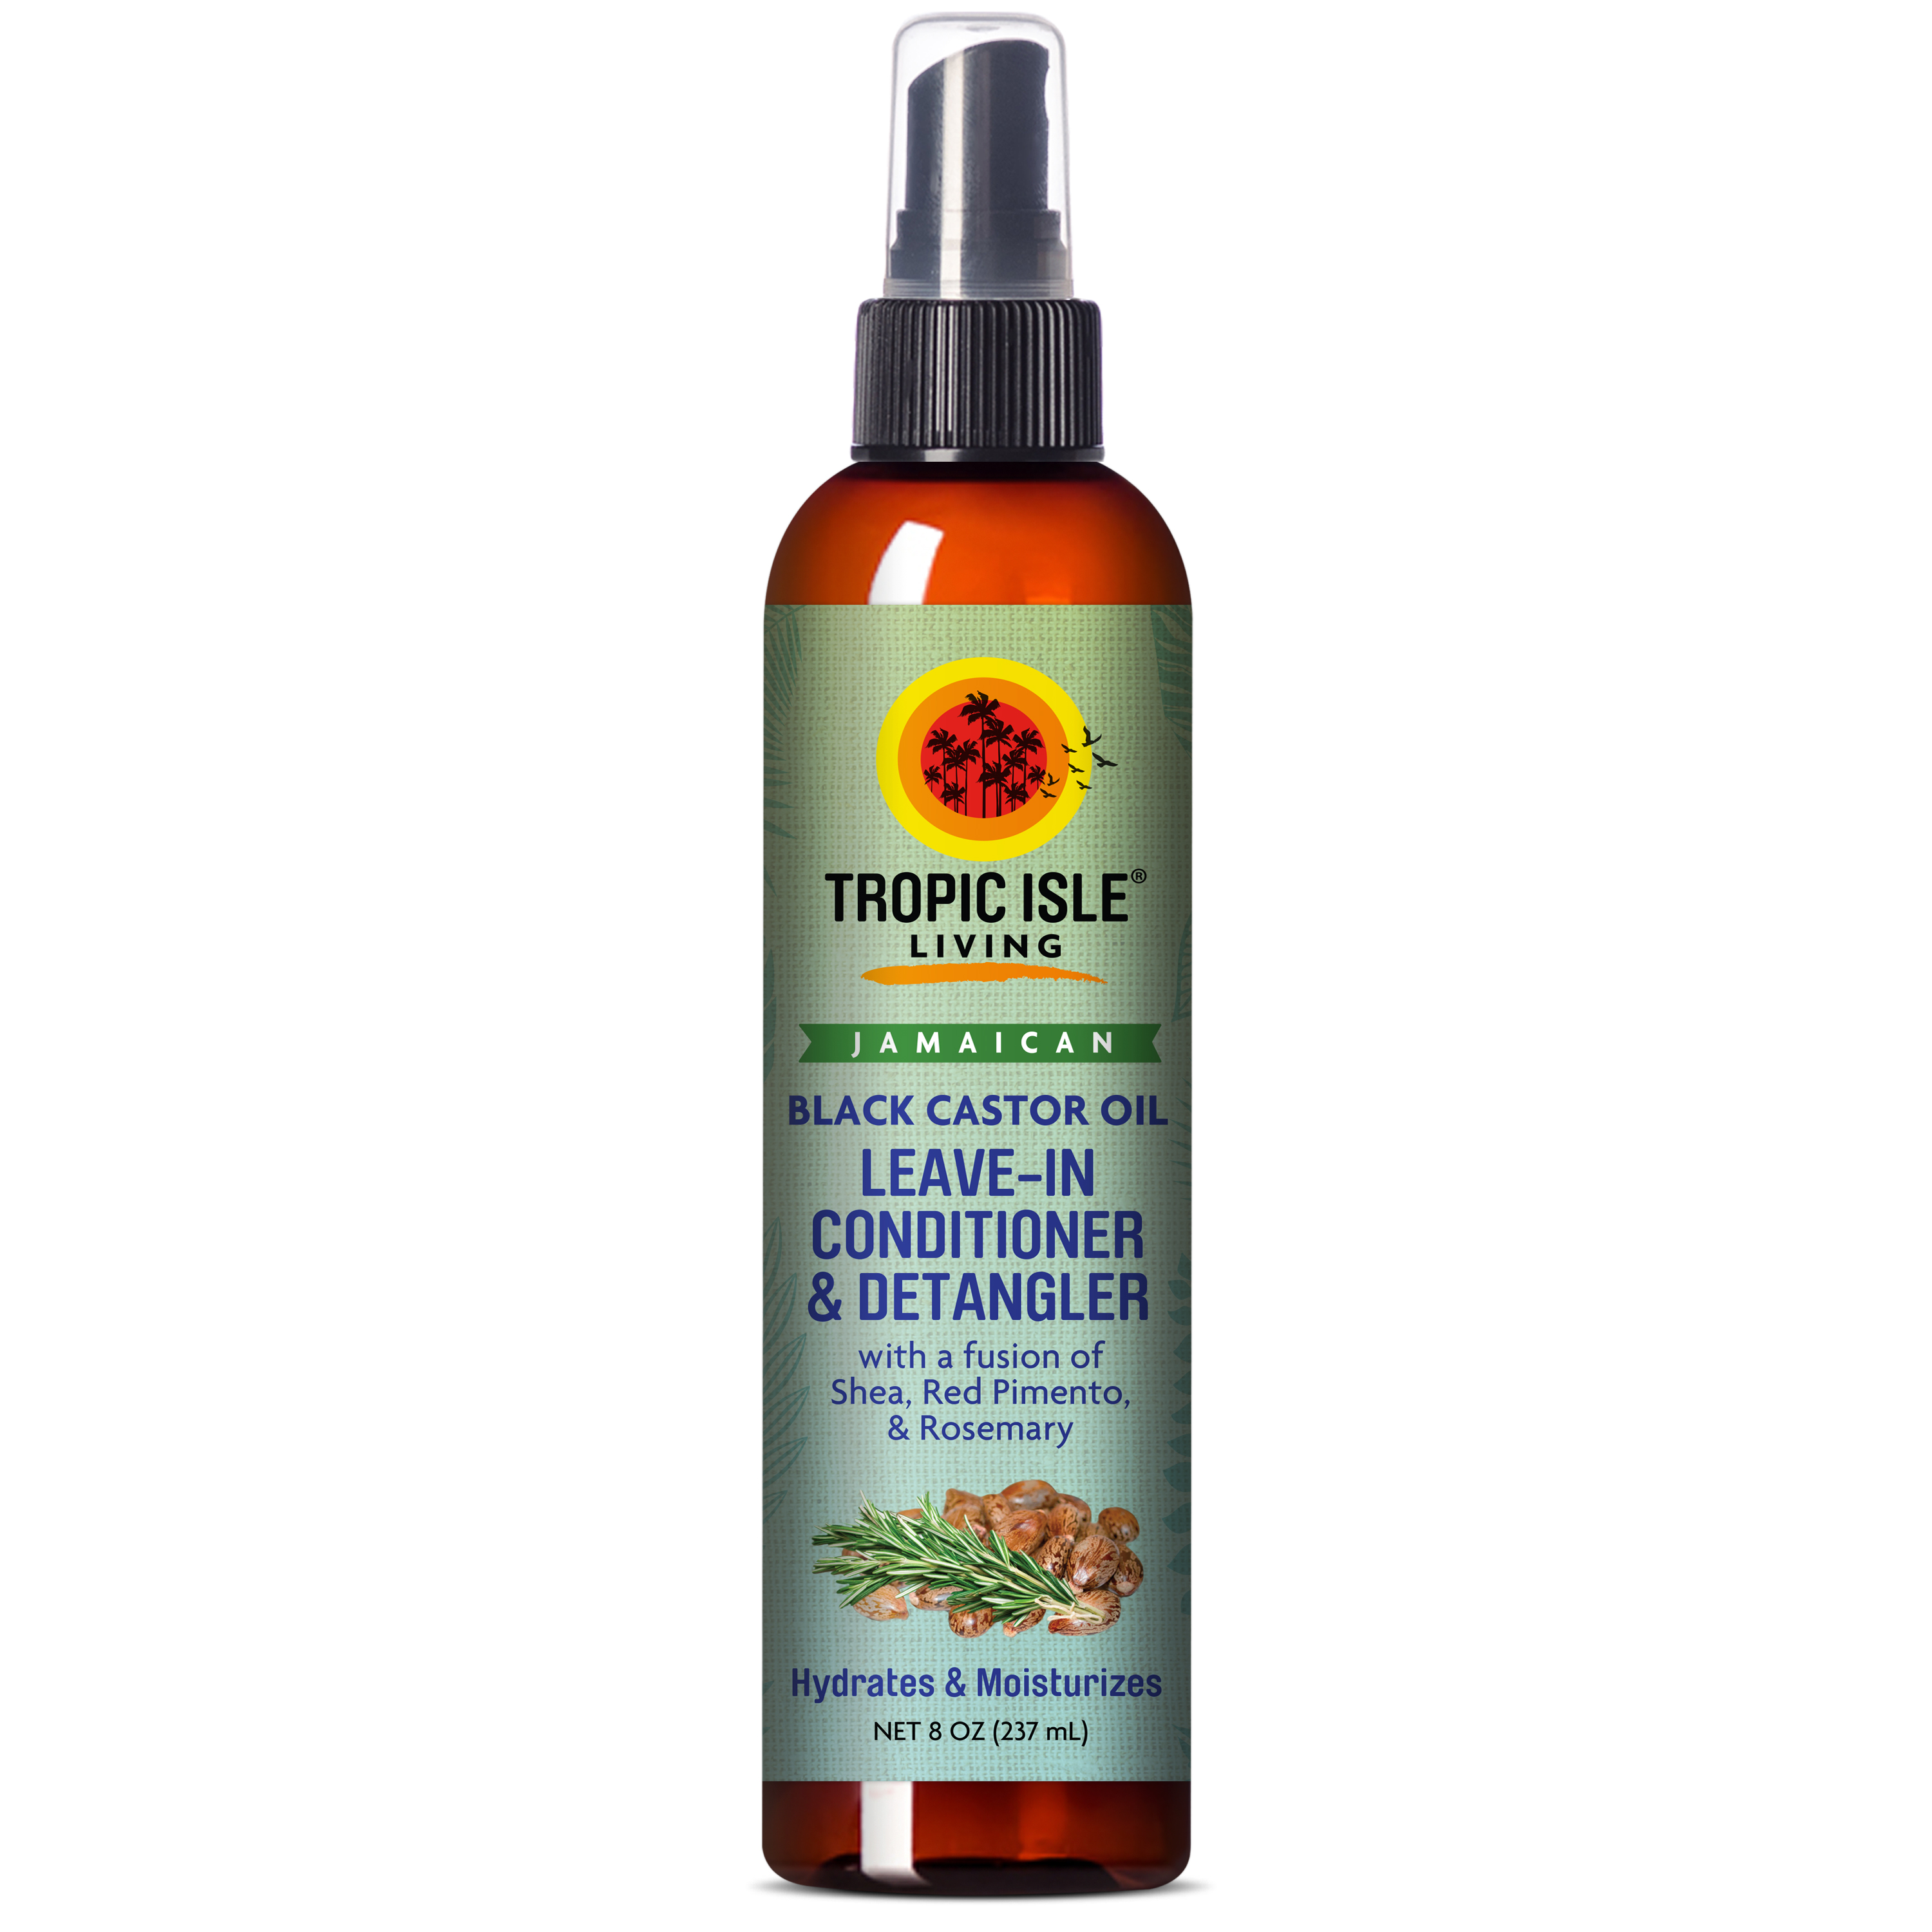 Gerilyn 4c: Tropic Isle Living- Jamaican Black Castor Oil Leave-In Conditioner & Detangler